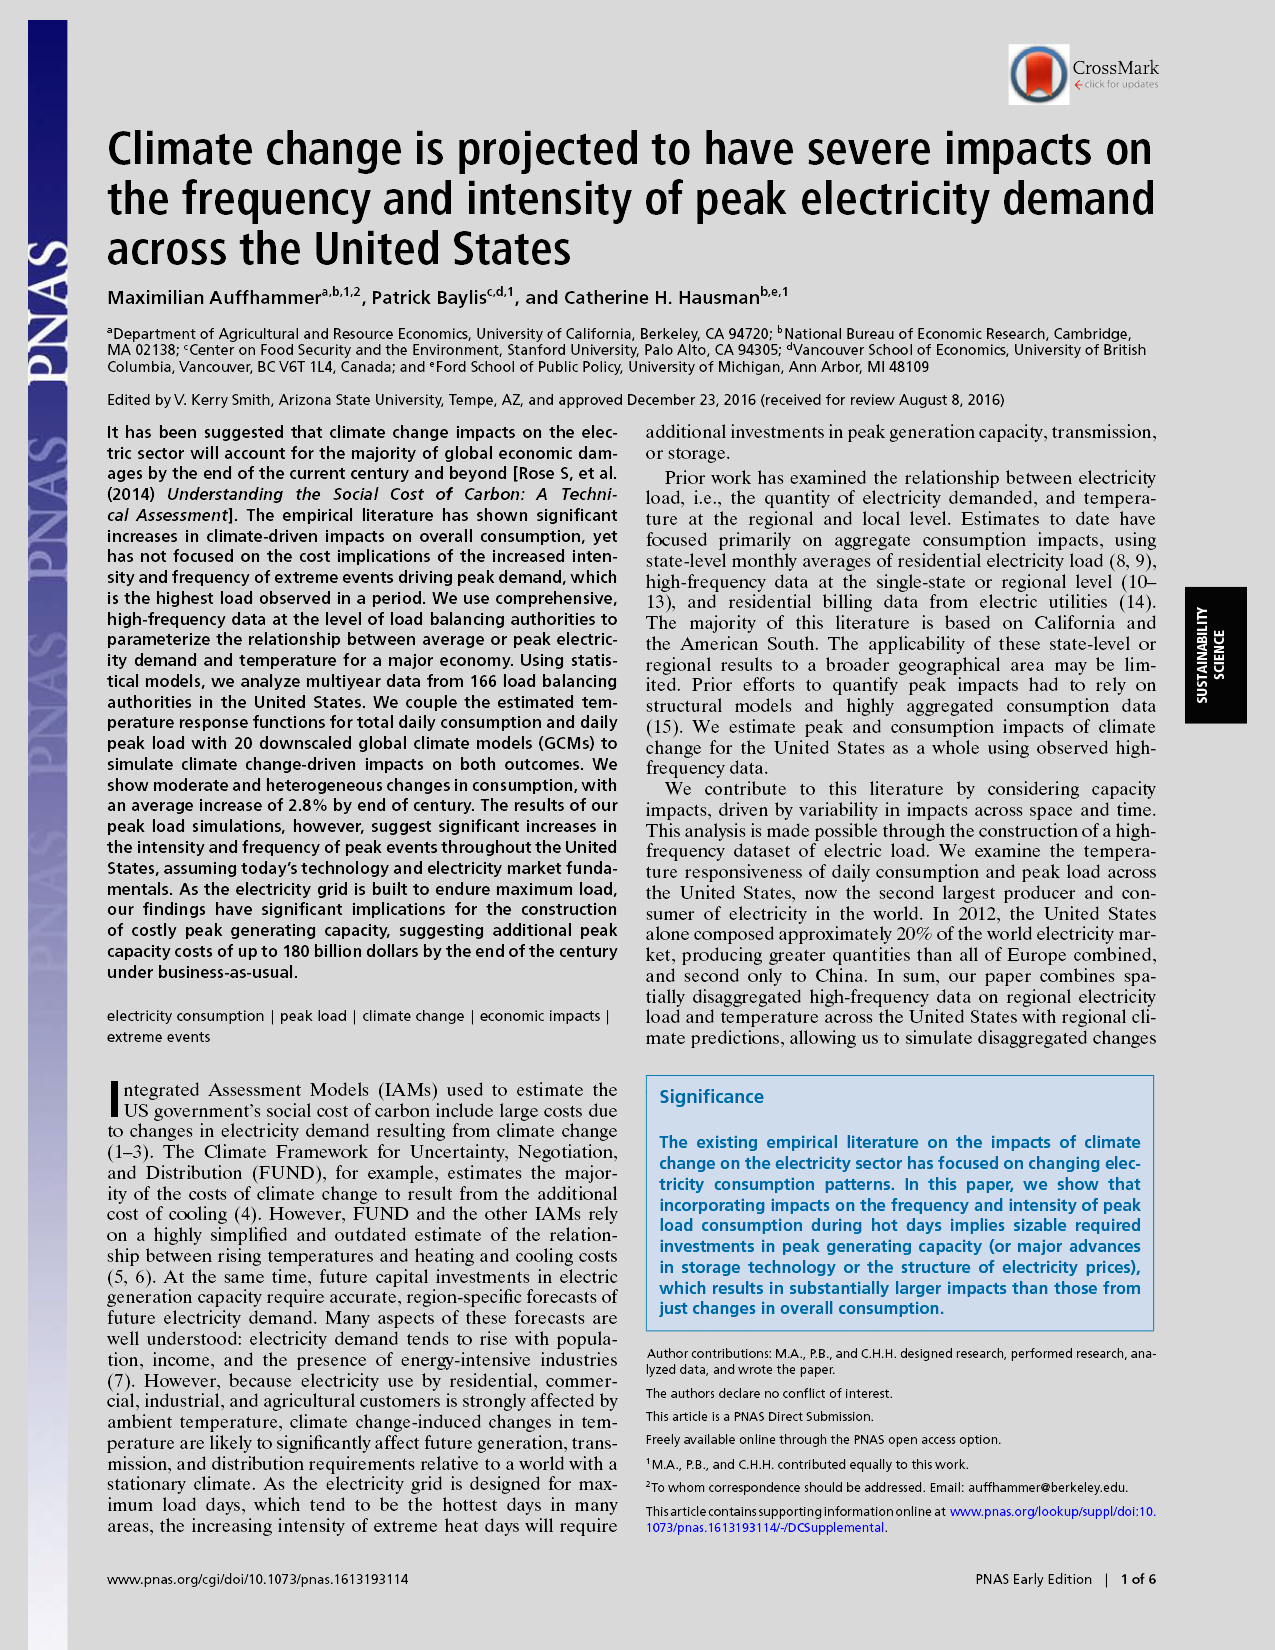 Electric Power Plan Fort Berthold Comprehensive Regional Electrical Grid The Role Of Climate Change On Our Systems 2017